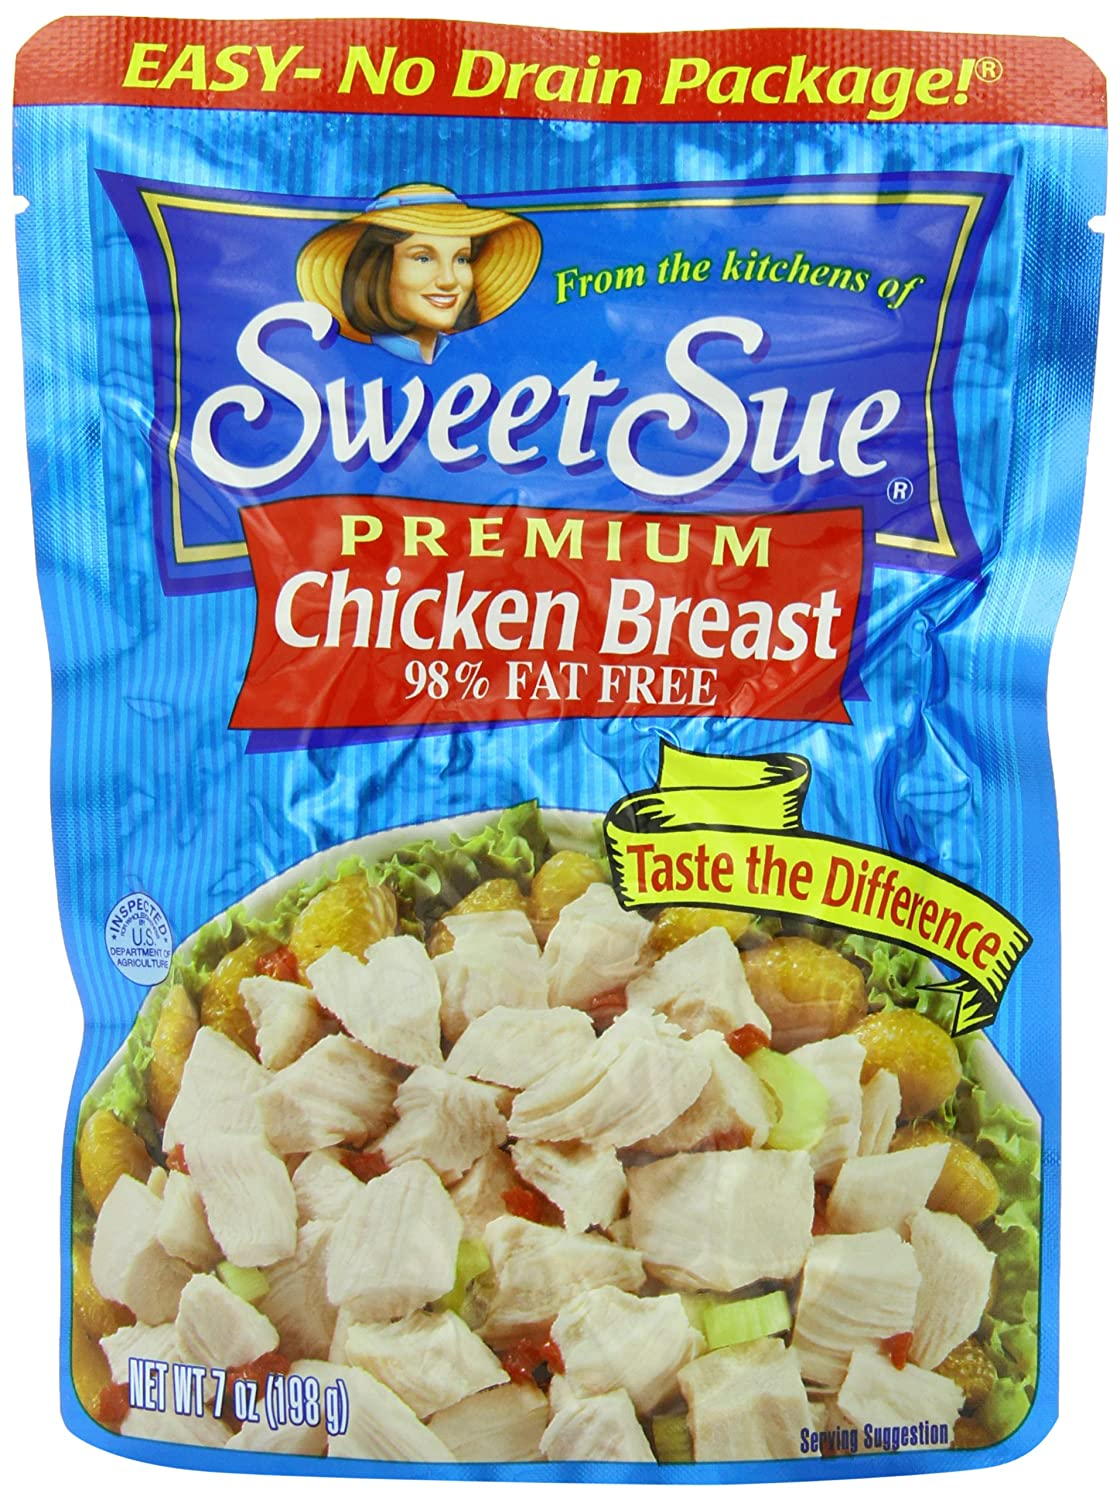 SWEET SUE Chicken Breast, High Protein Food, Keto Food and Snacks, Gluten Free Food, High Protein Snacks, Bulk Canned Food, 7 Ounce Pouches (Pack of 12)